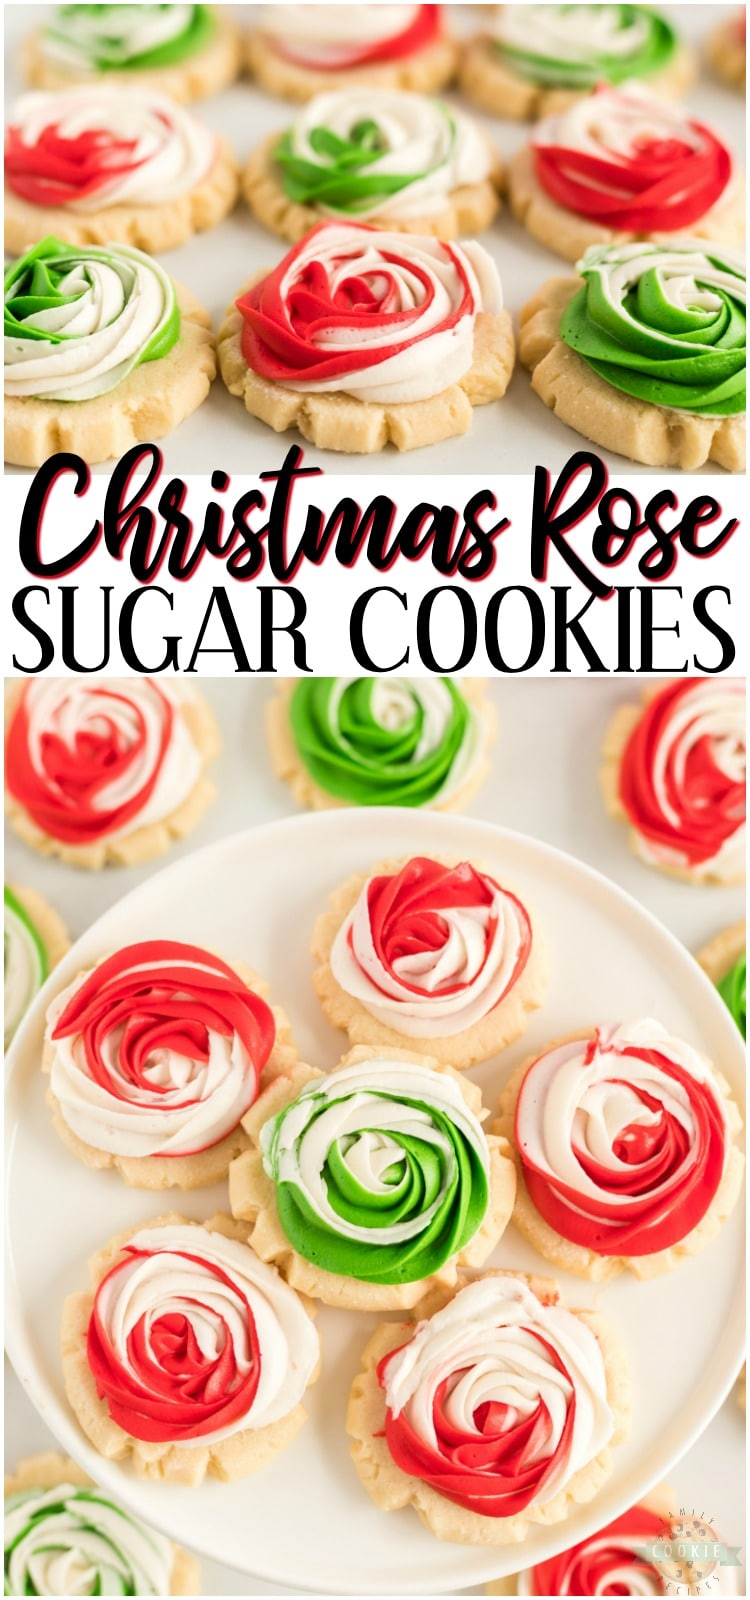 Frosted Rose Sugar Cookies are buttery, soft sugar cookies with a delicious swirled rosette on top! This sugar cookie recipe doesn't require any chilling and you don't have to roll them out either! Elegant Sugar Cookies that look like roses that are perfect as gifts! #cookies #Christmas #rose #roses #frosting #dessert #baking #holidays #recipe from FAMILY COOKIE RECIPES